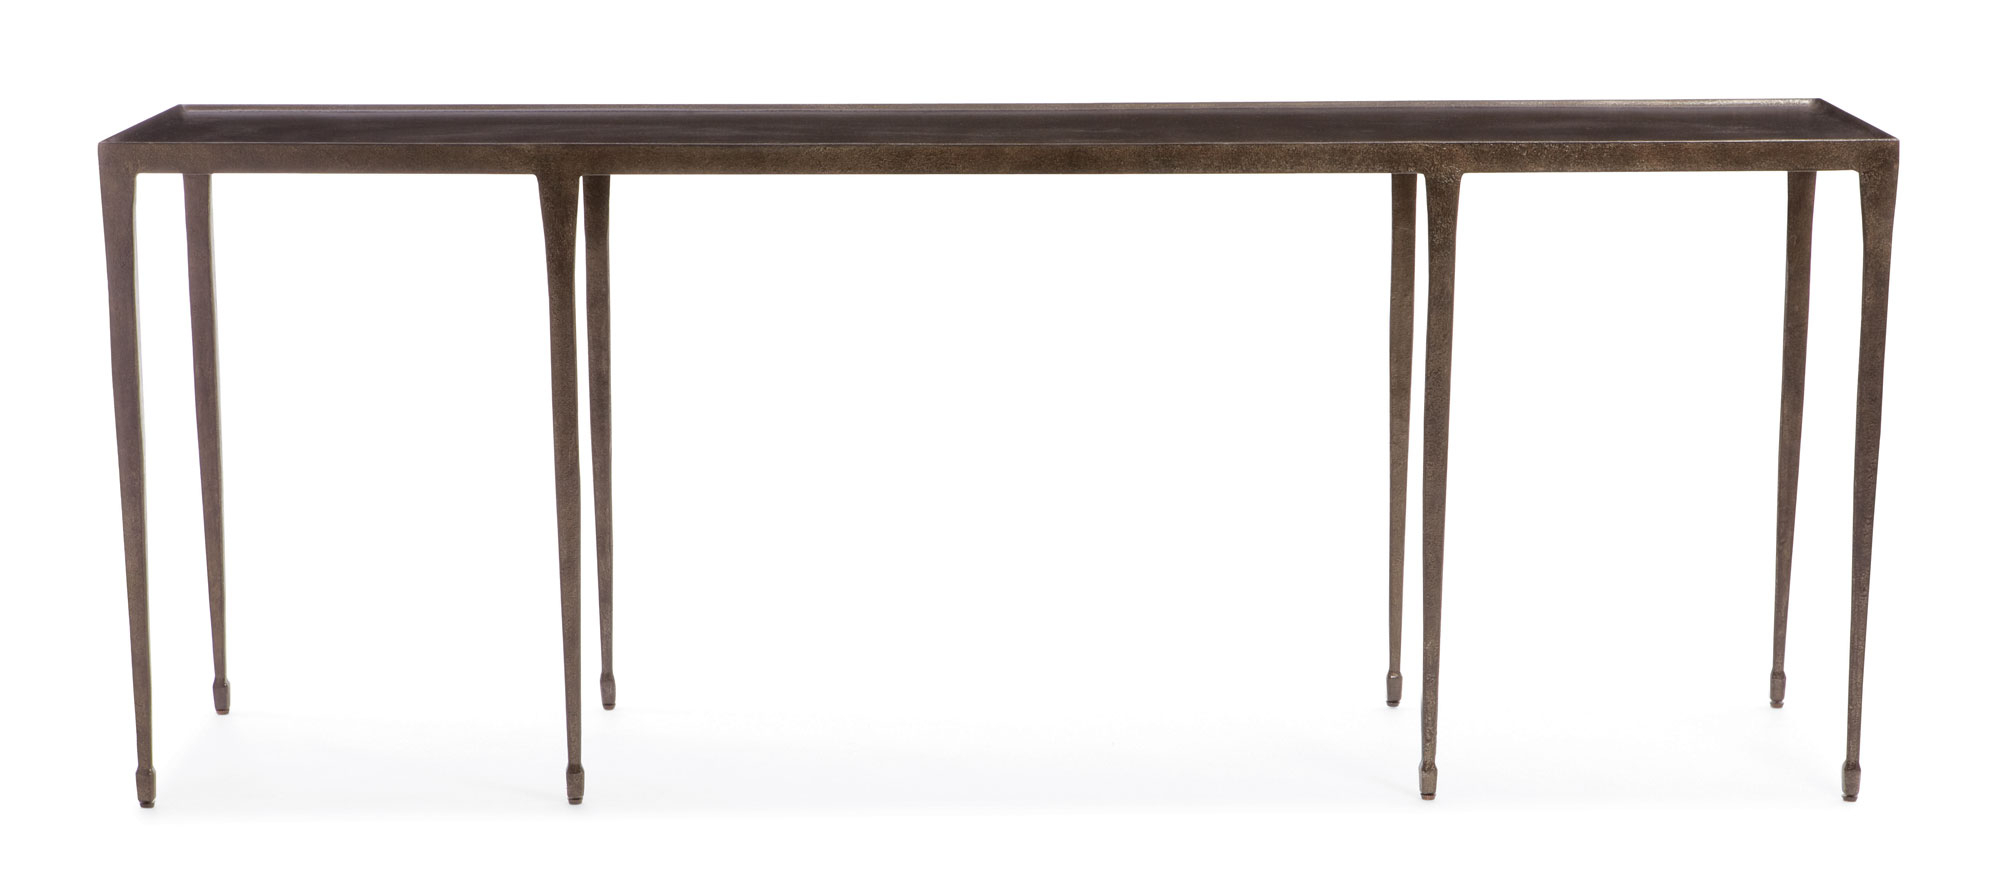 Bernhardt Console Table Halden 84 Inch Hammered Iron Distressed Within Silviano 60 Inch Console Tables (View 4 of 30)